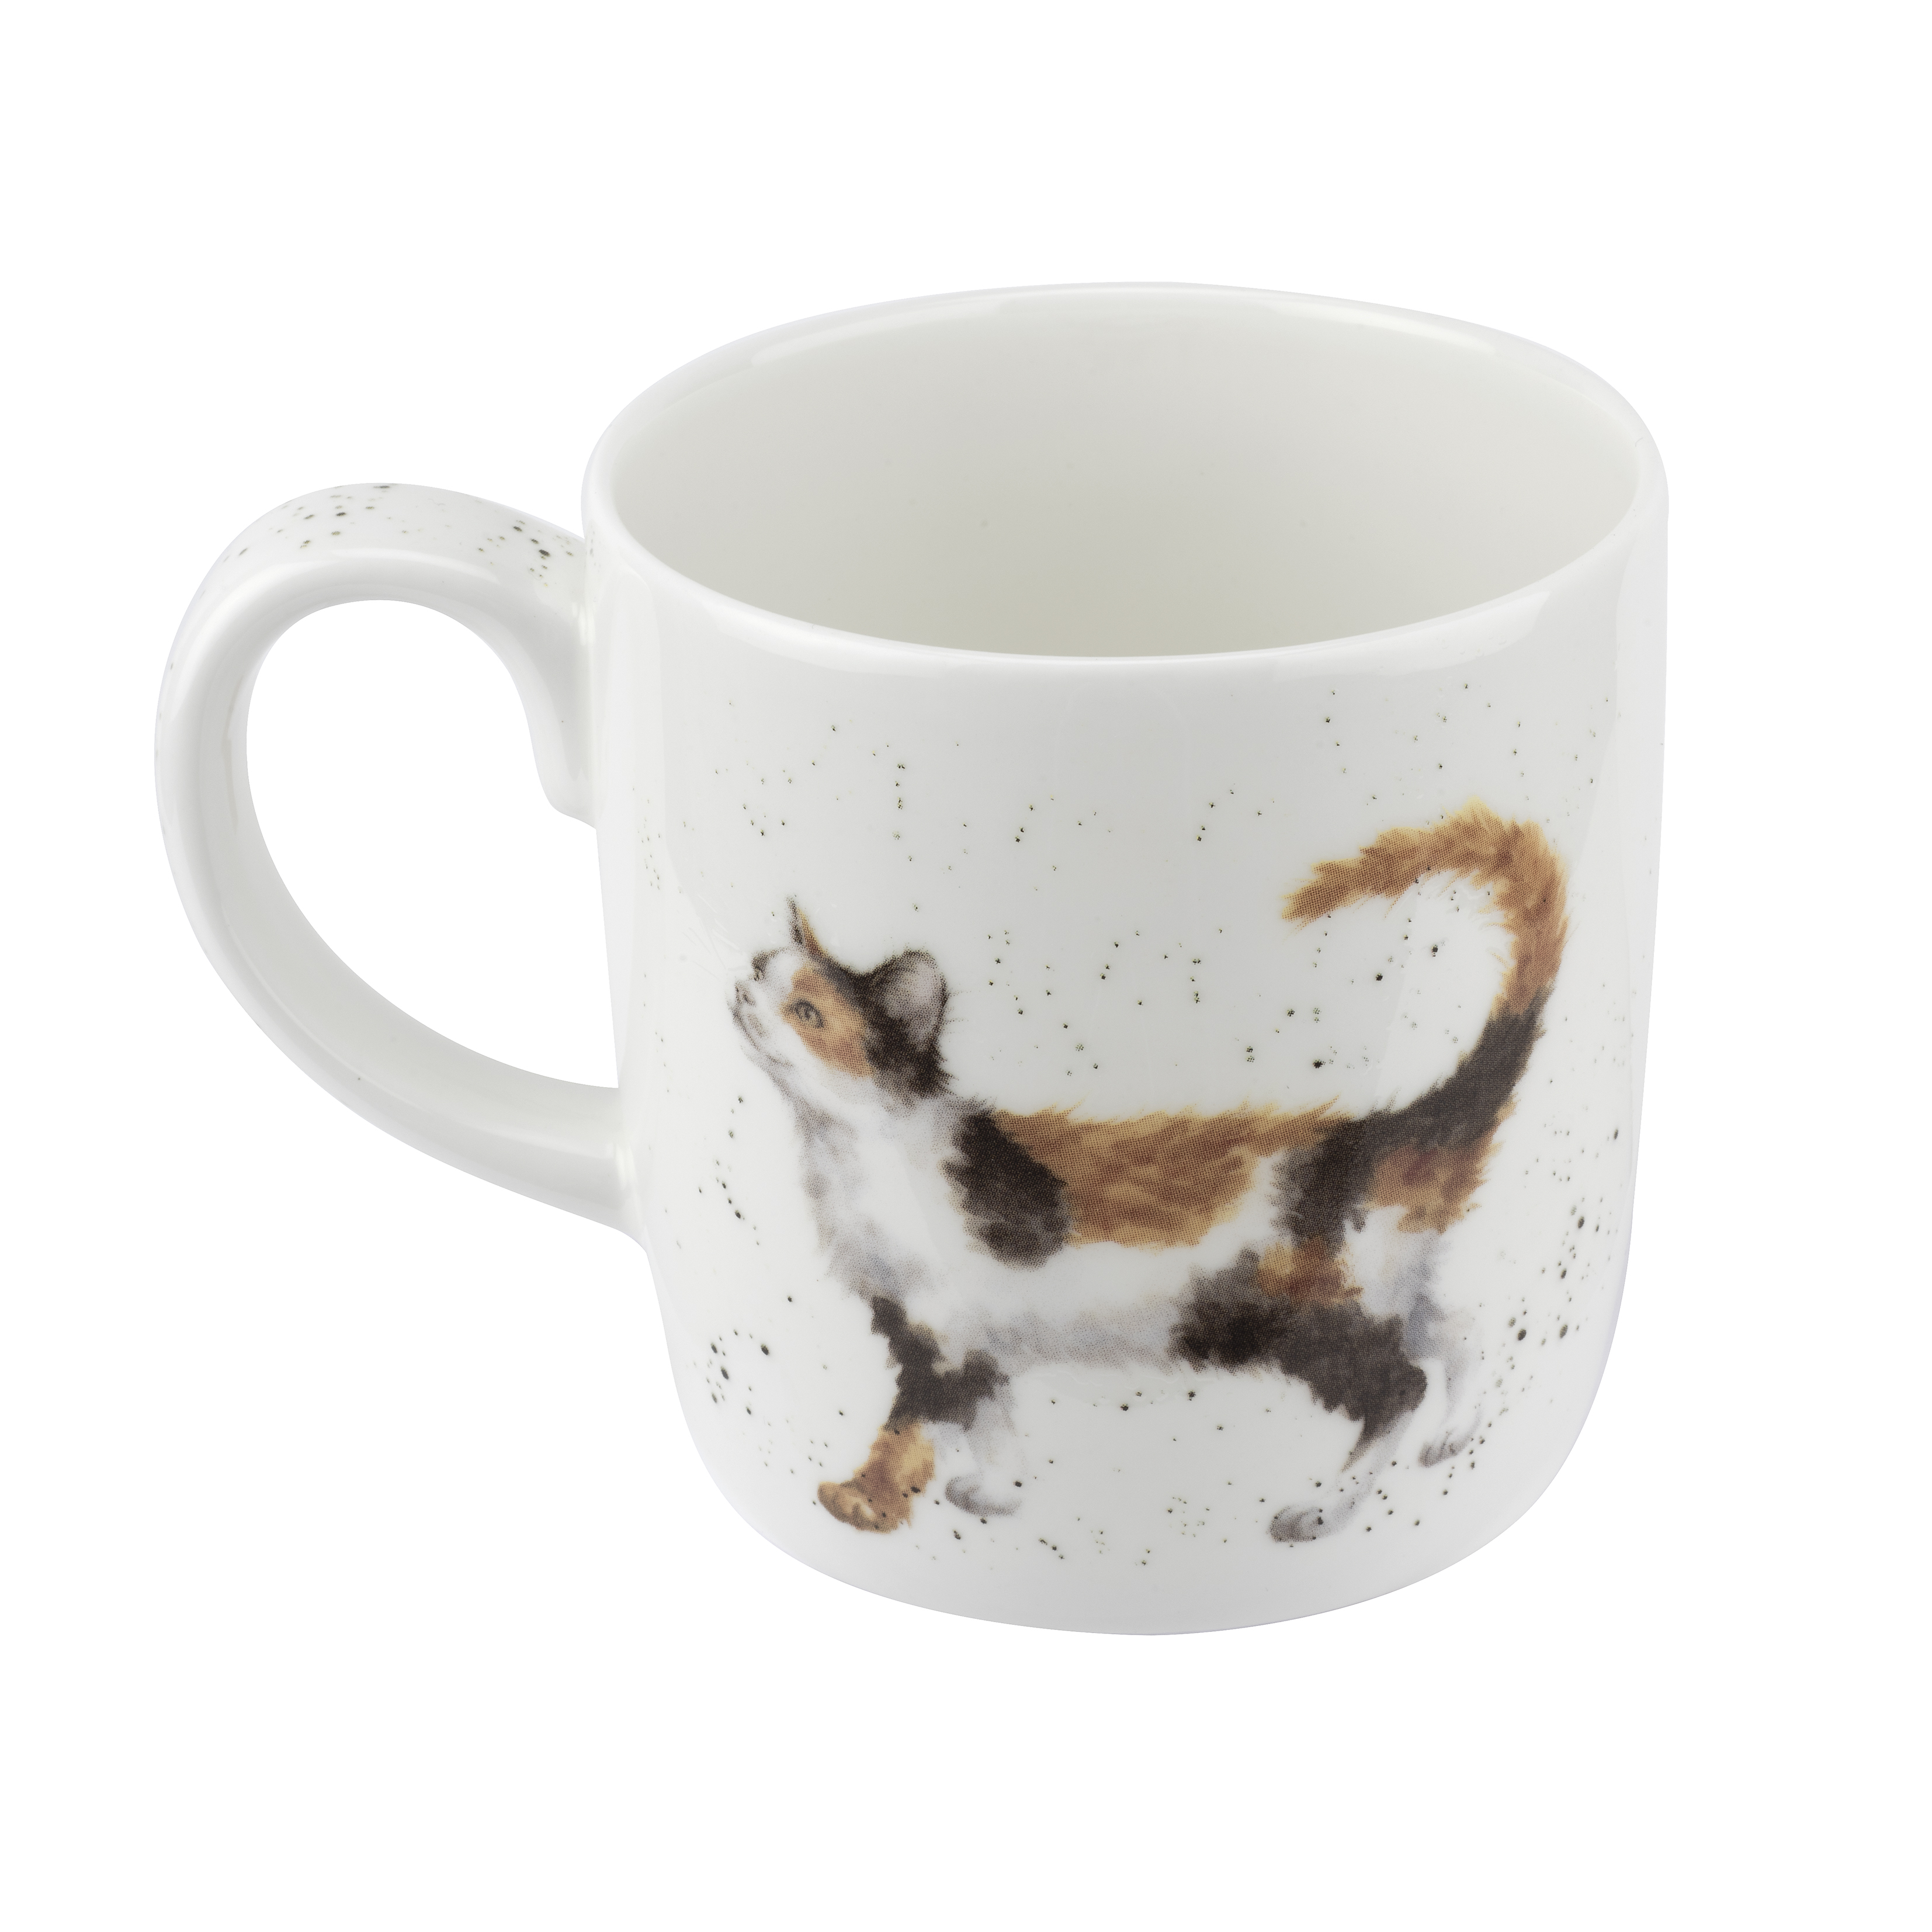 Royal Worcester Wrendale Designs Mug 14 Ounce Feline Fine (Cat) image number 1